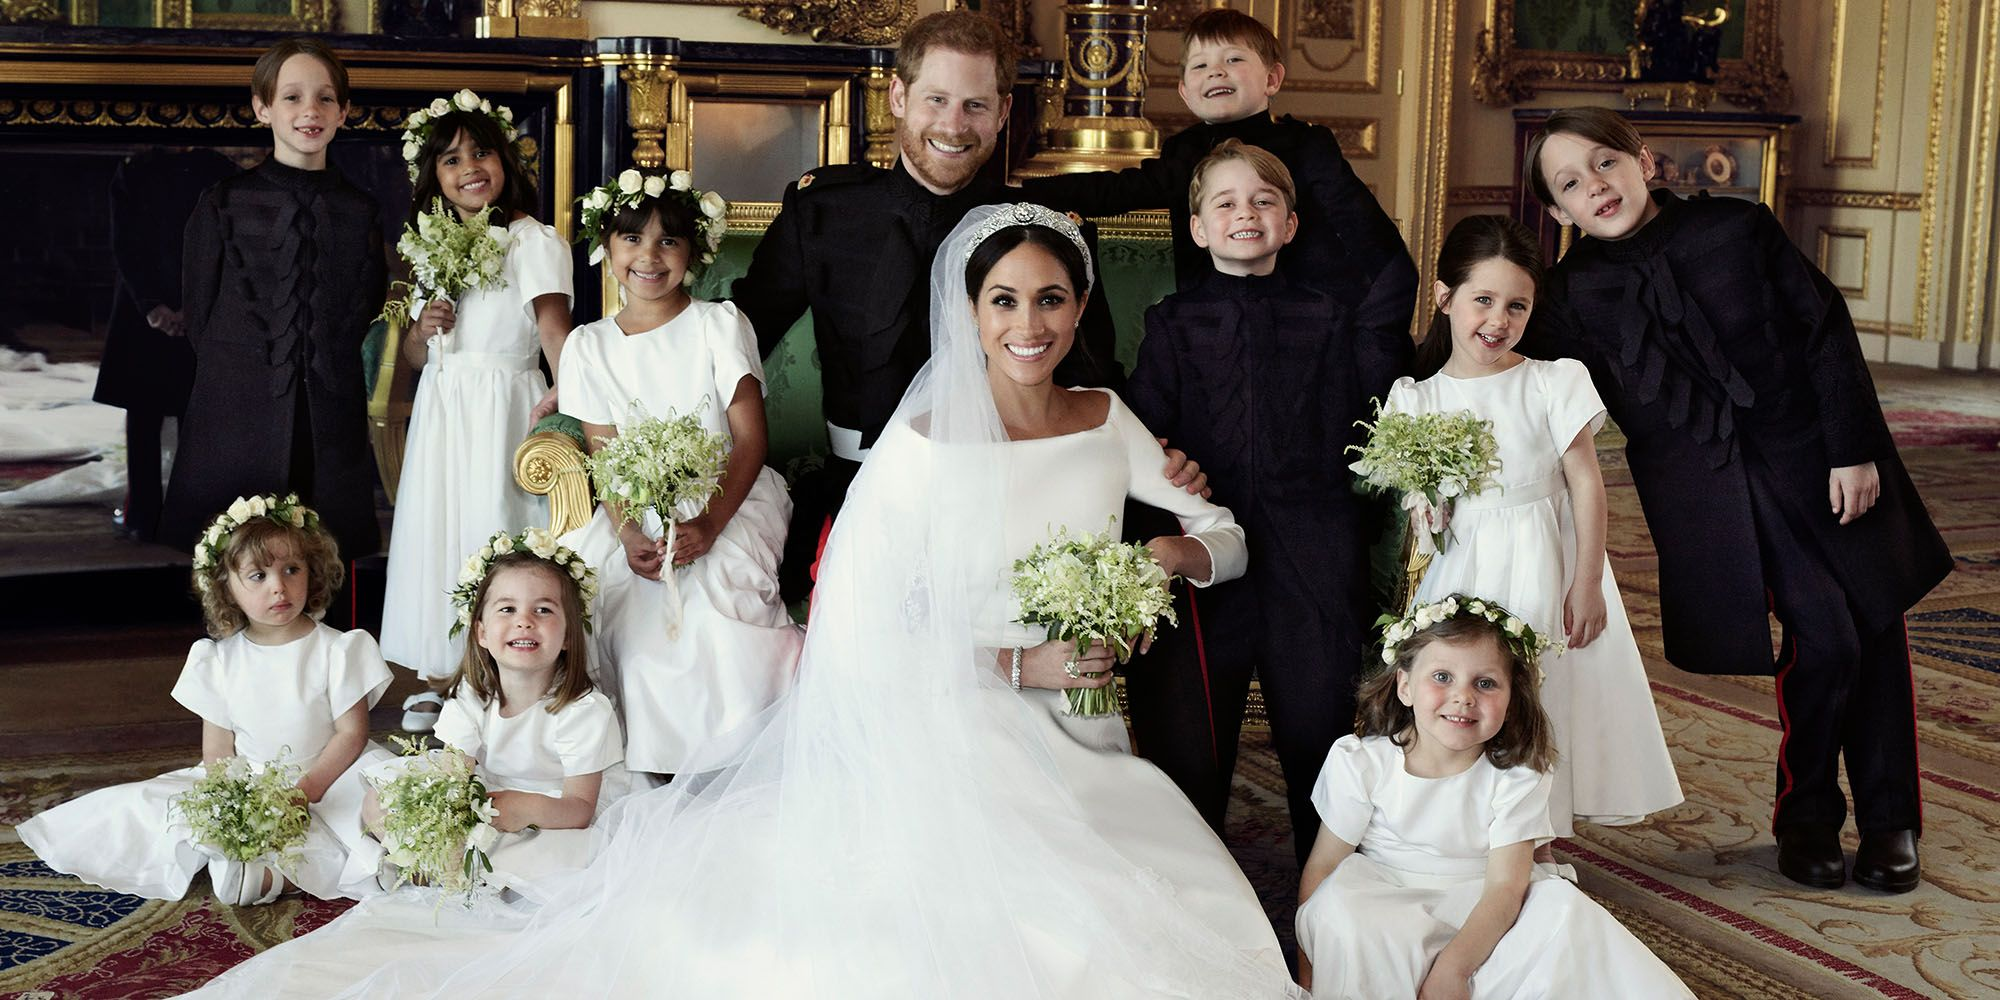 Prince Harry Meghan Markle Honored Princess Diana In Their Wedding Portraits